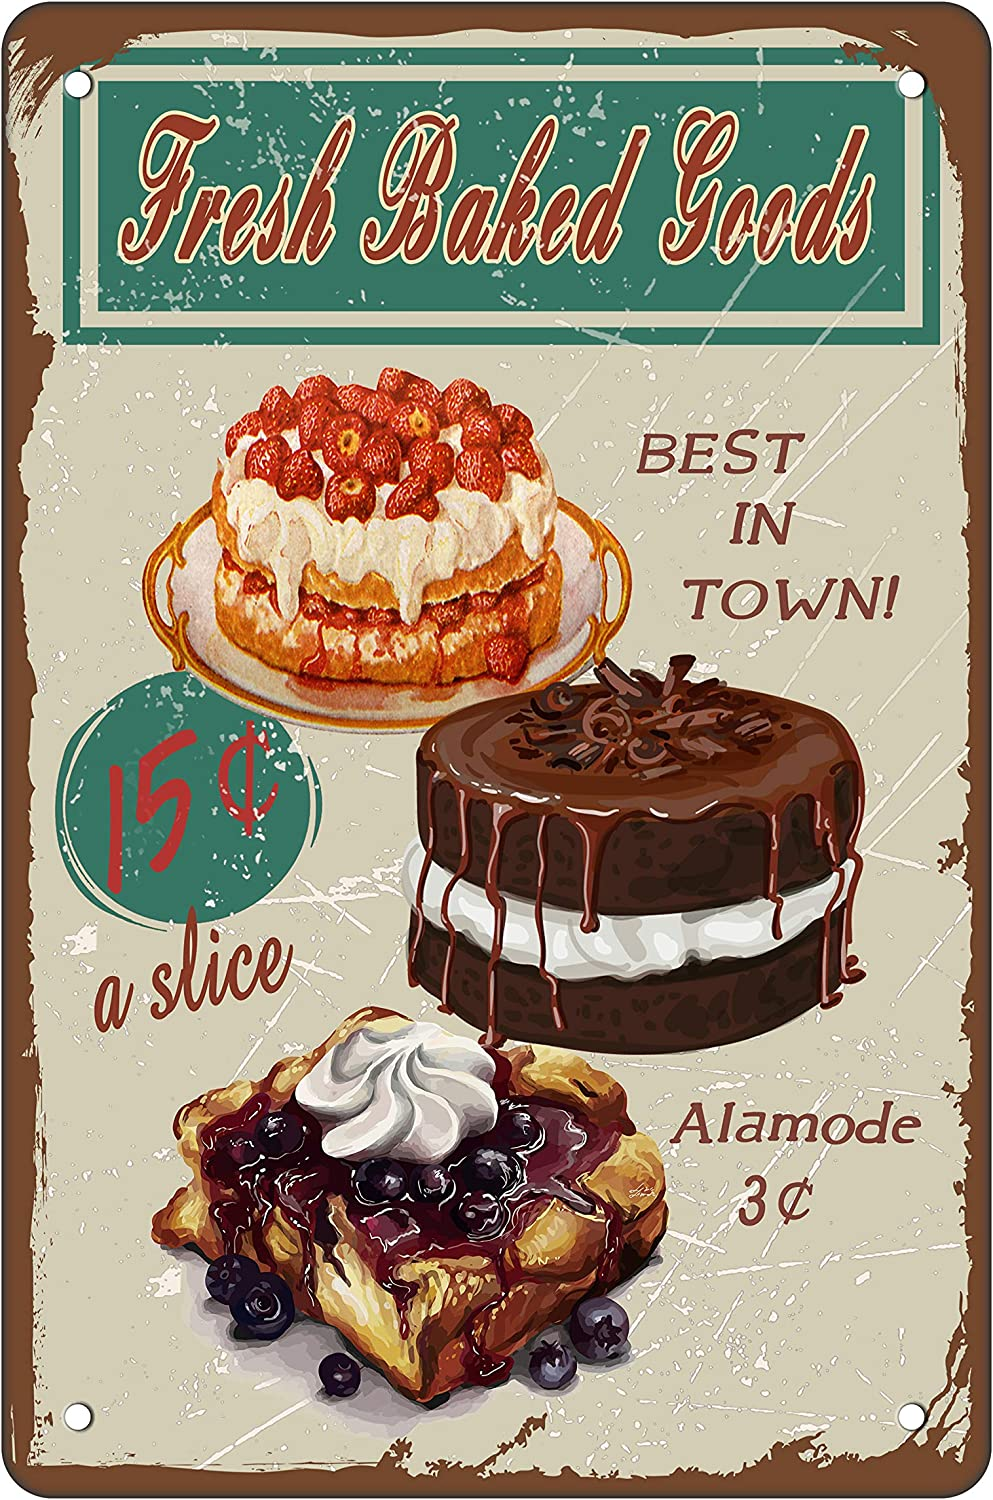 Asoodoo Bakery Restaurant Kitchen Tin Sign Decor,Fresh Baked Goods Best in Town, Vintage Retro Metal Tin Sign Wall Plaque Poster Best Gift 8 x 12 Inches